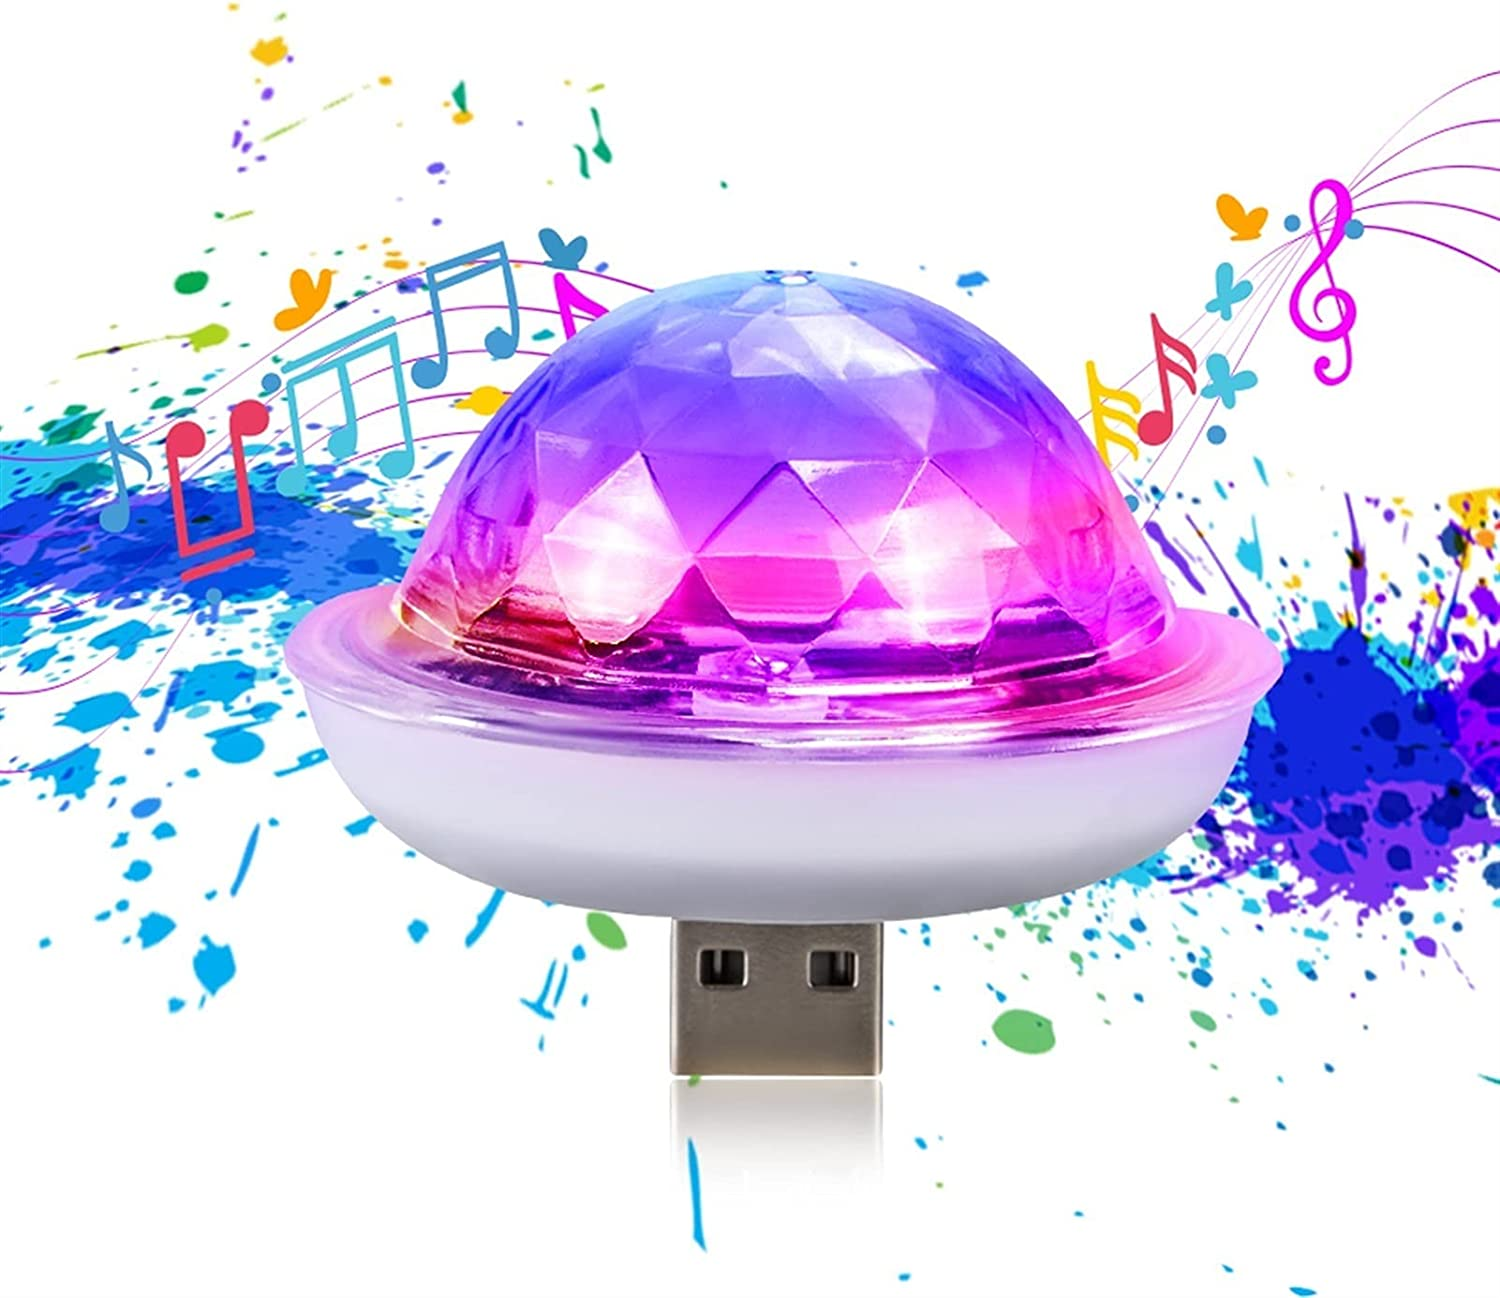 USB Disco Ball Light Prom Party Portable Ligh Strobe Price reduction Translated